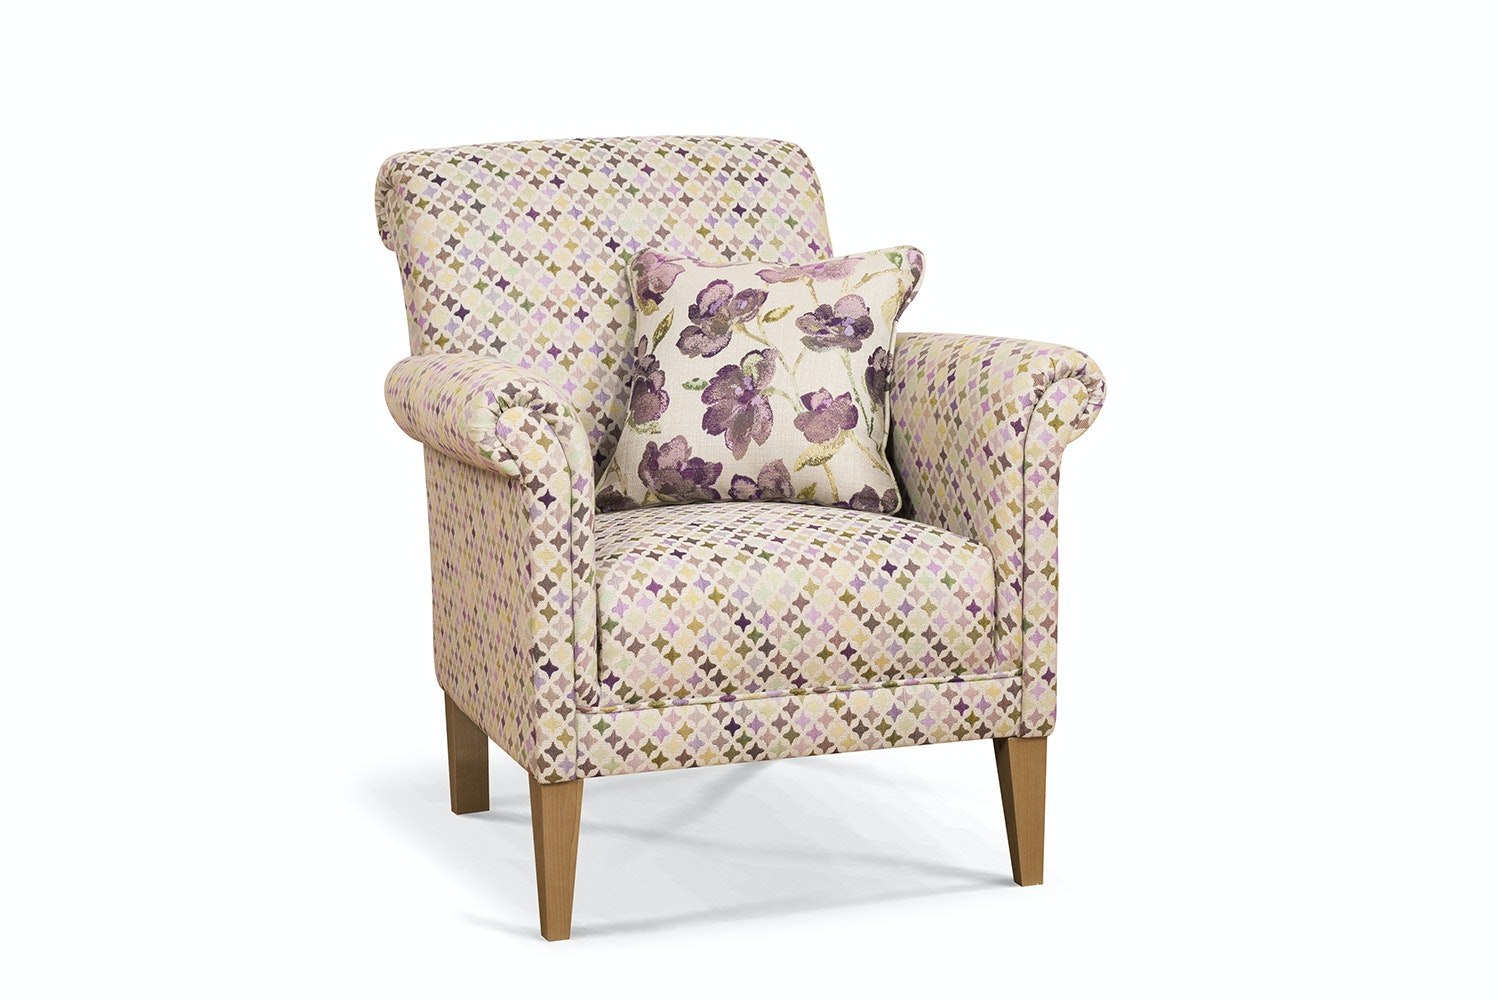 Preston Bedroom Chair | Star Rose With Scatter